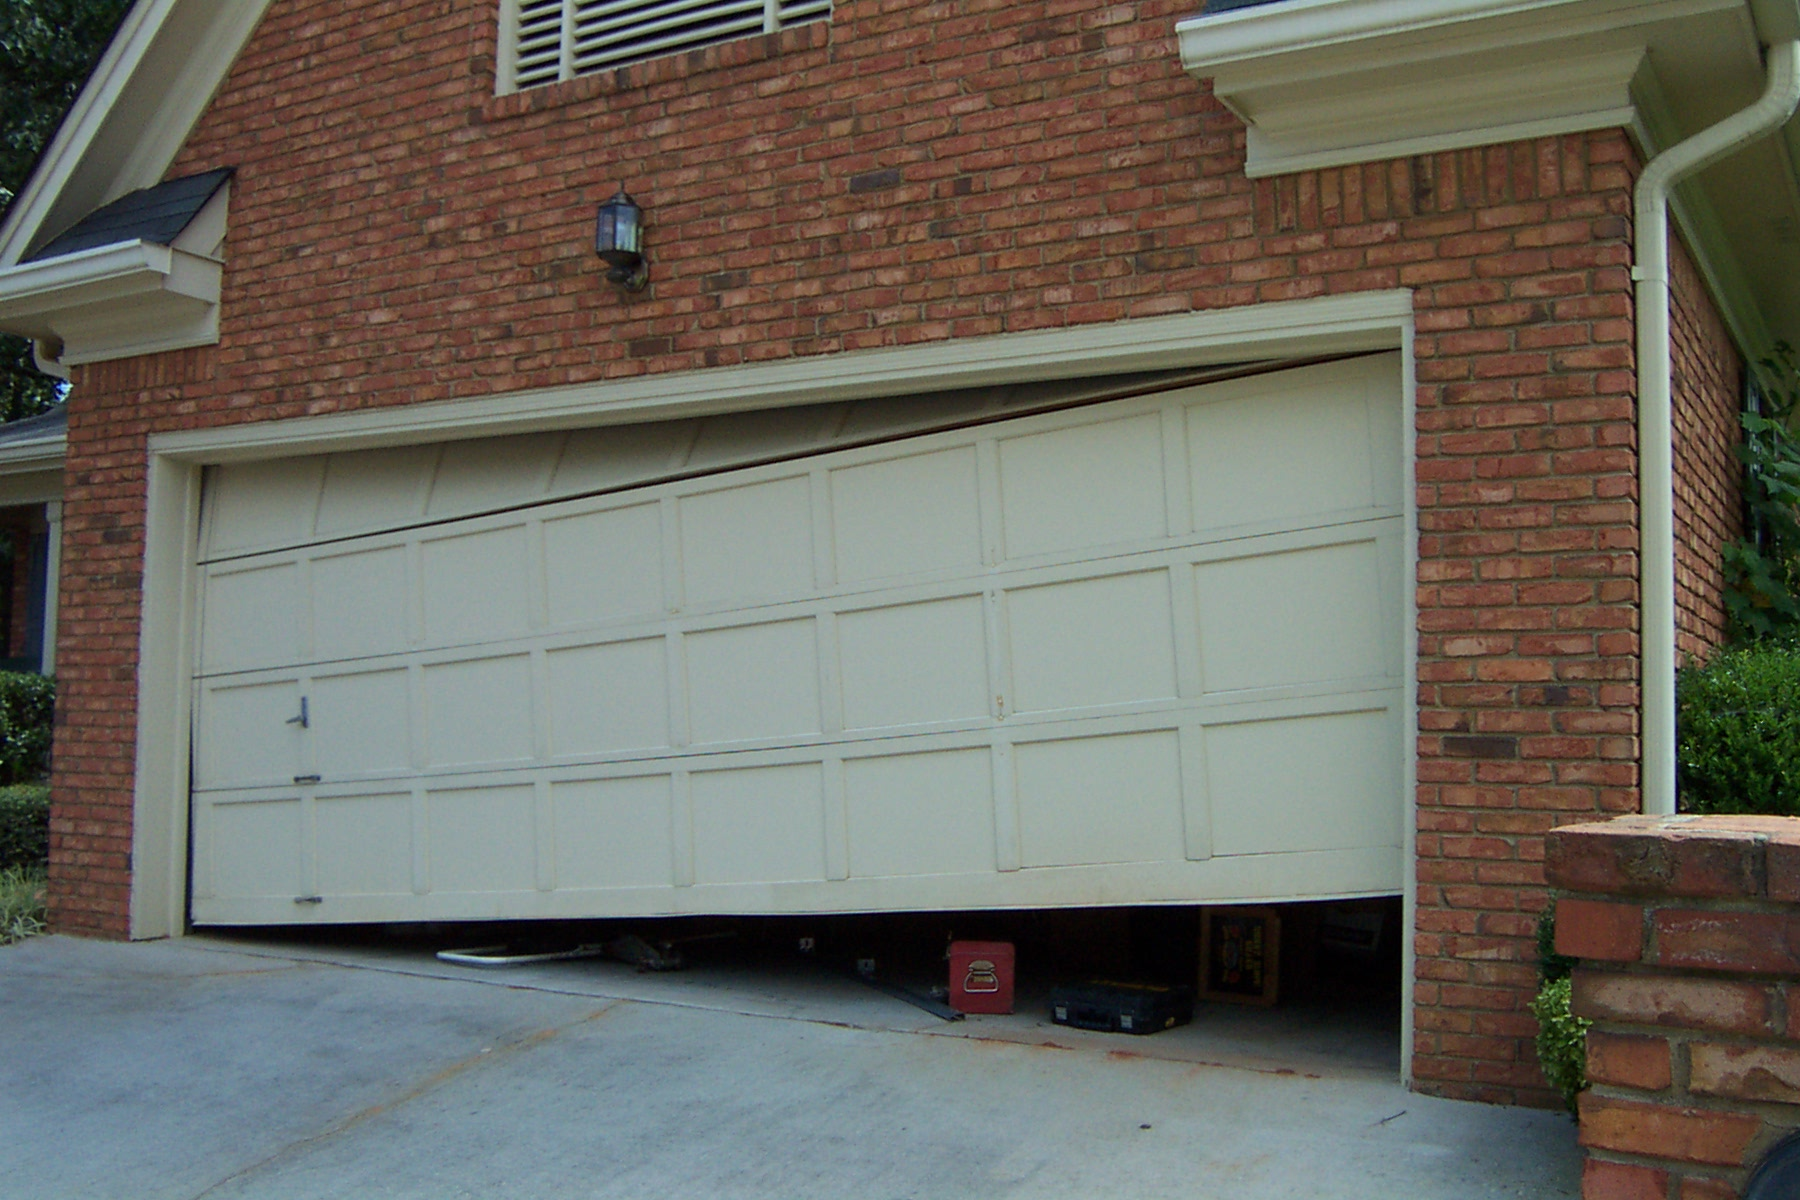 Le Meilleur Common Garage Door Problems Issues Az Garage Pros Ce Mois Ci